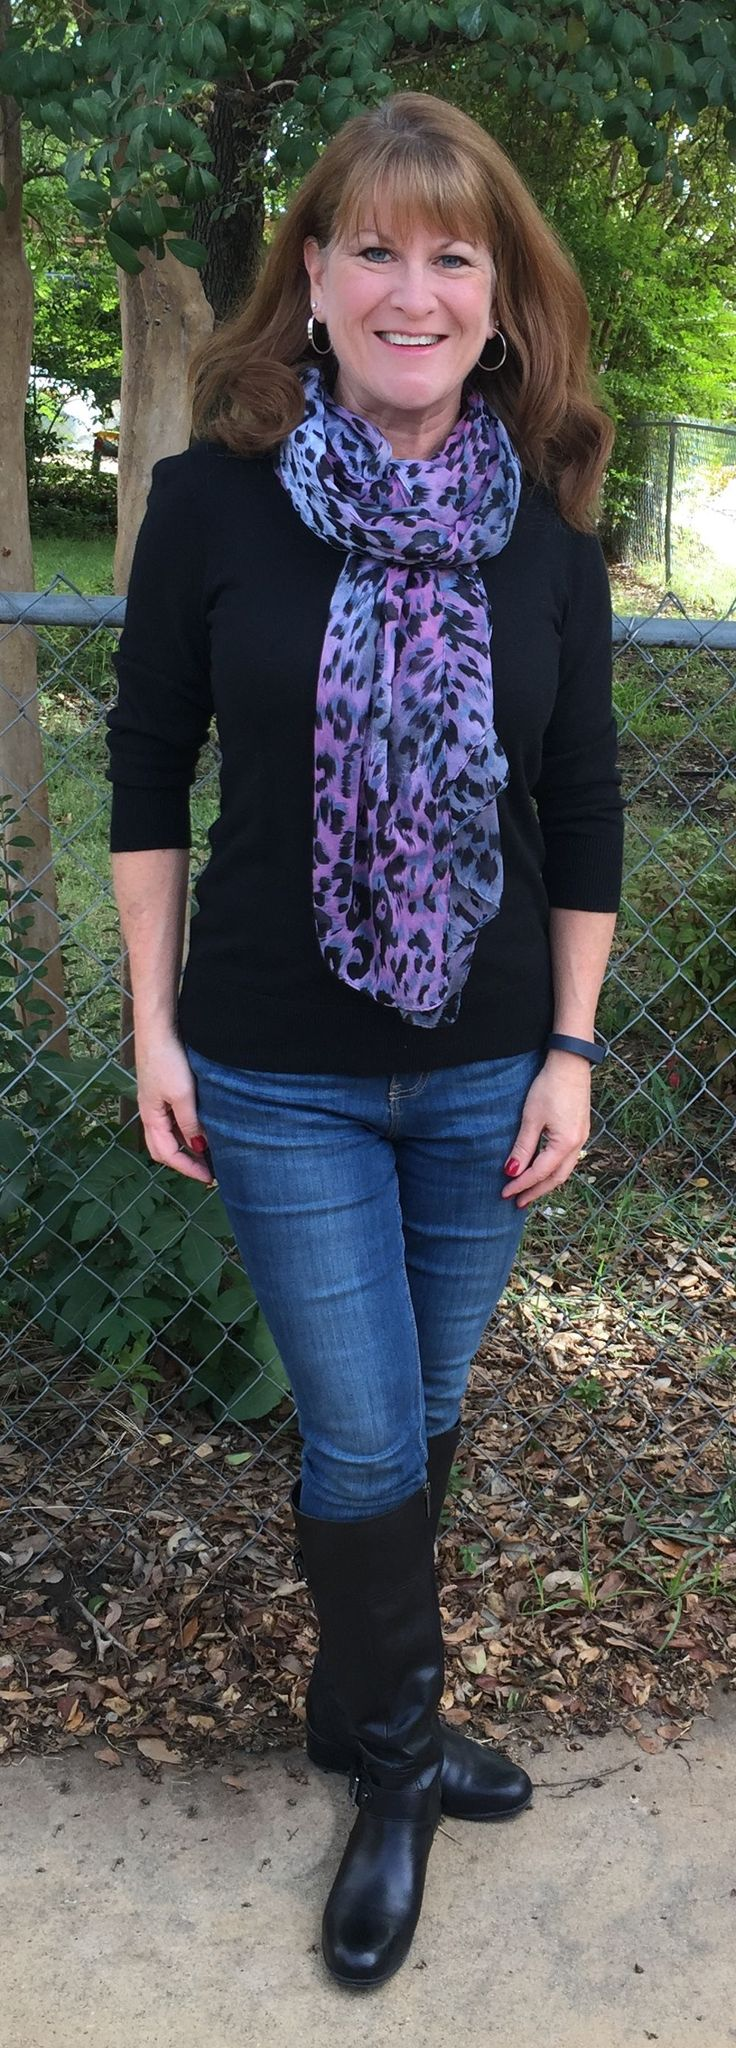 I love a scarf for adding a bit of color to an outfit.